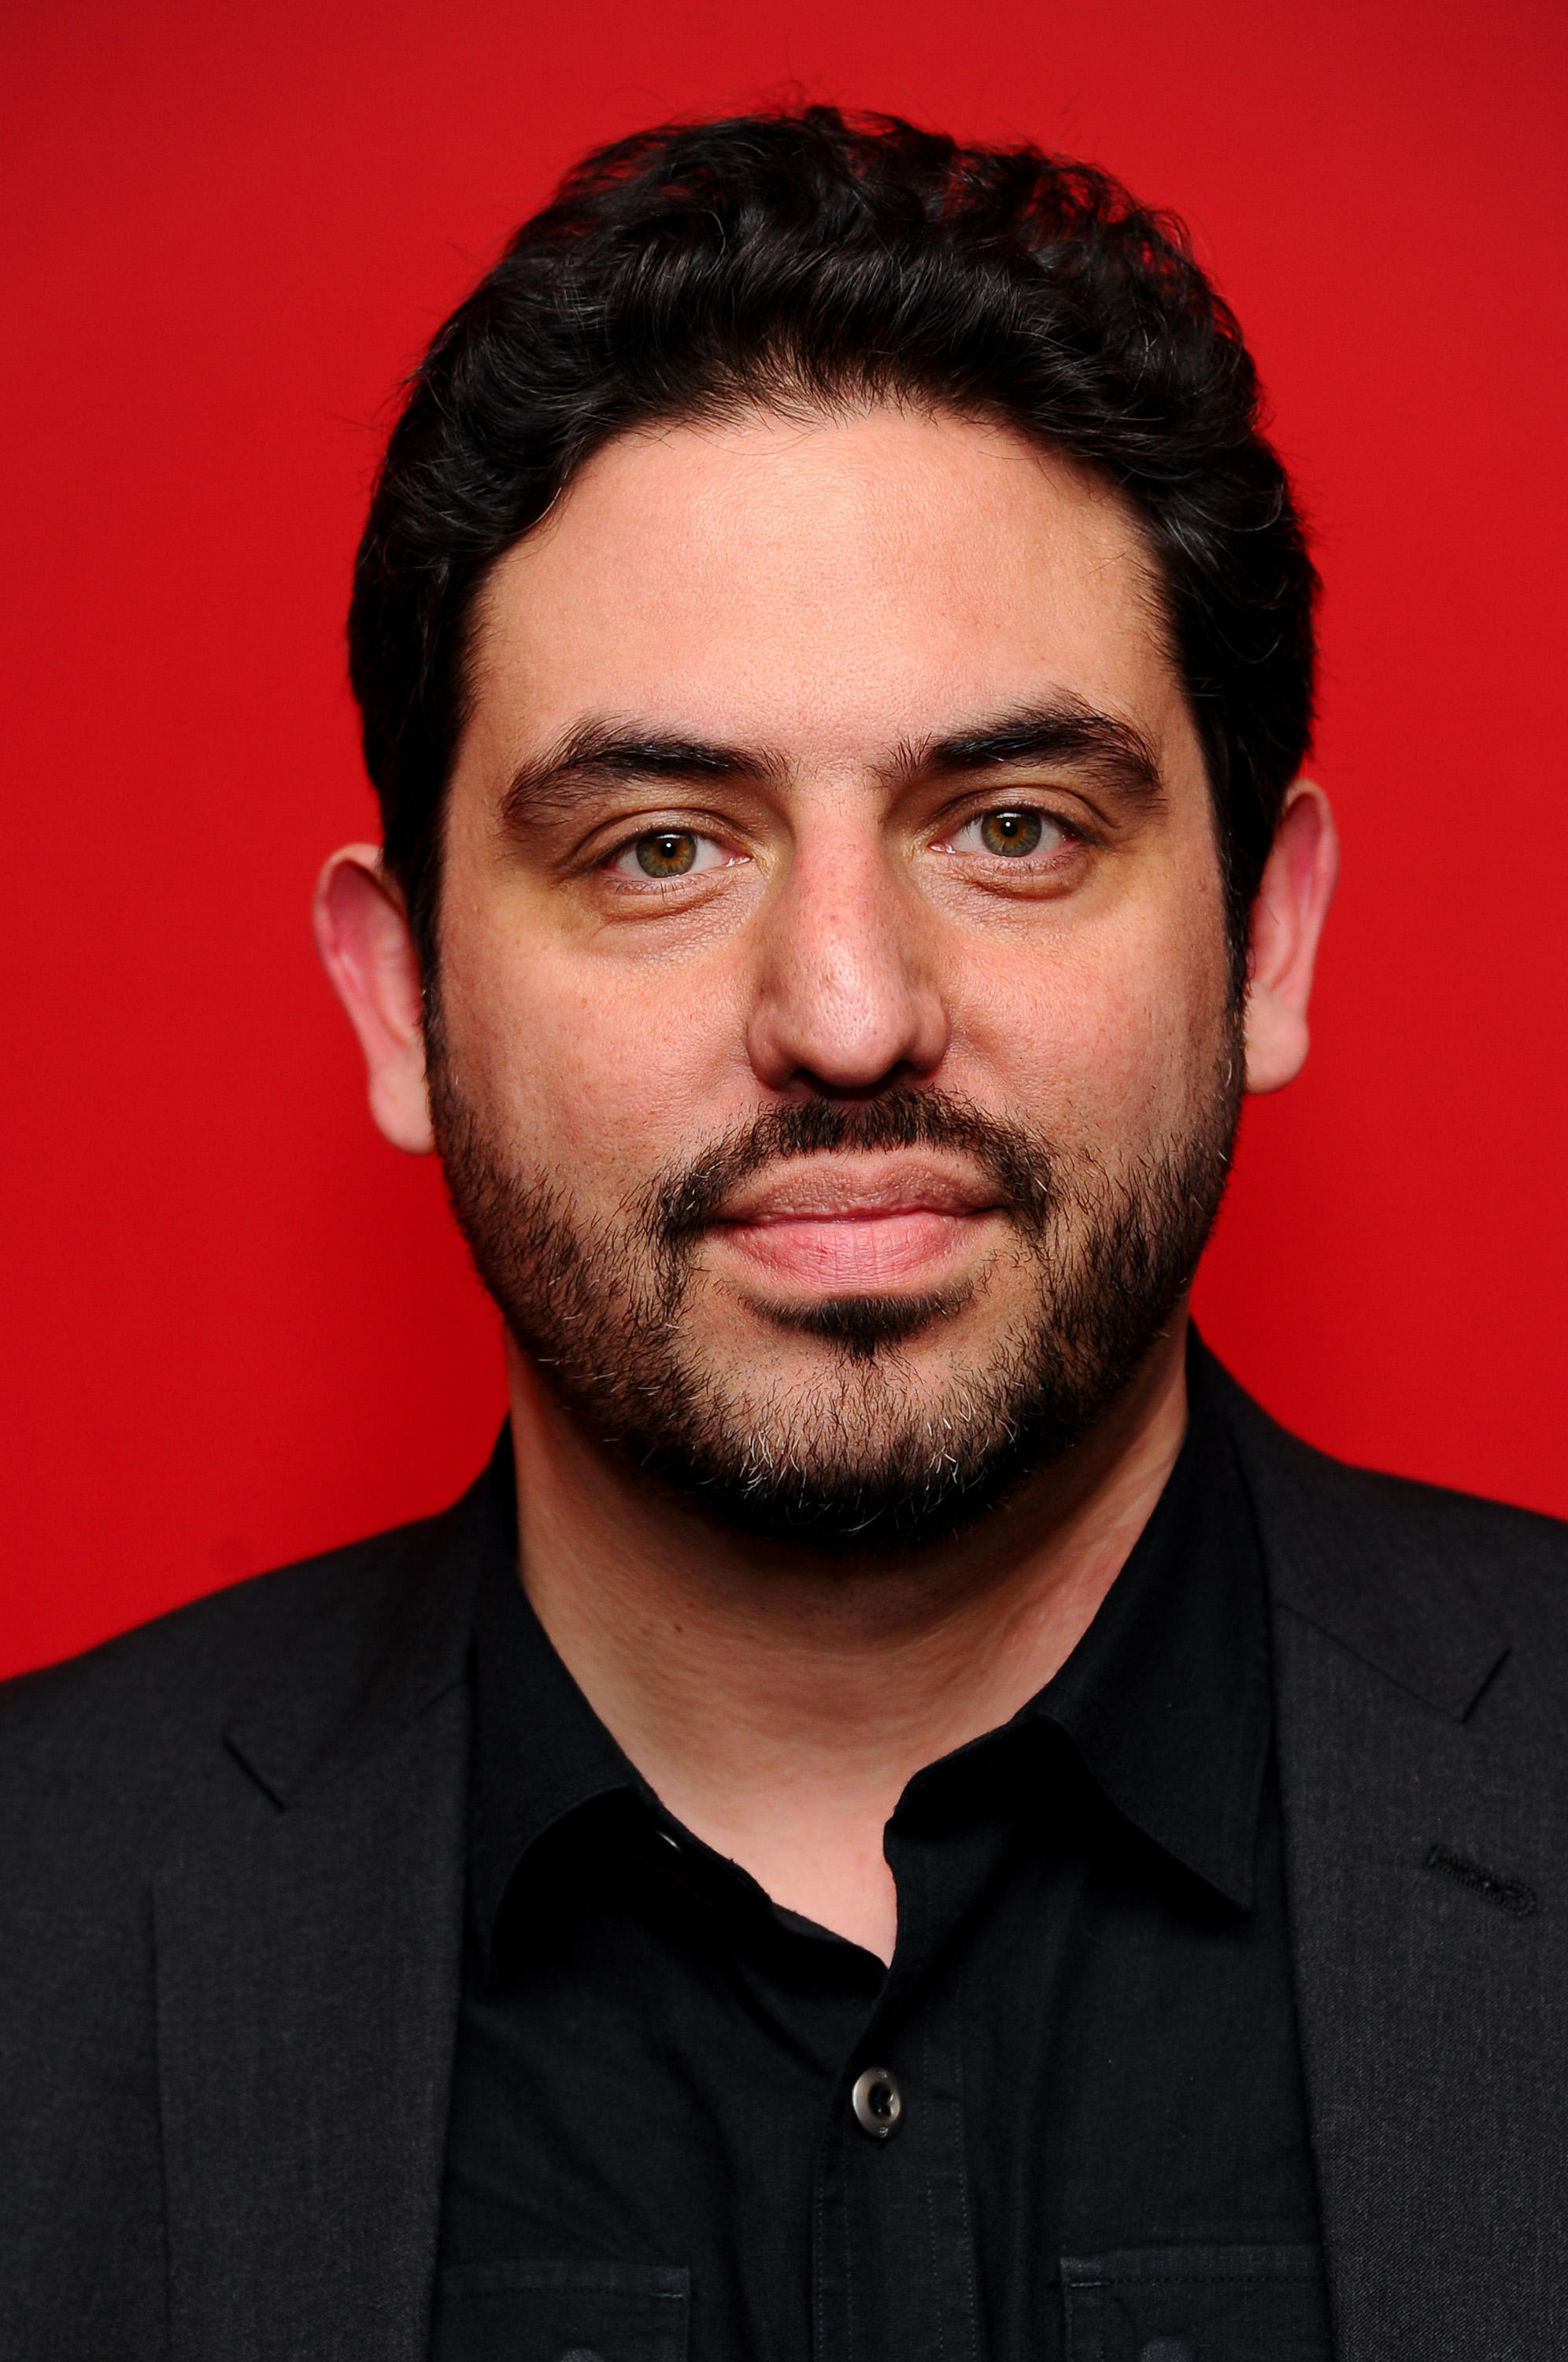 Bernardo Ruiz at the '4th Annual Cinema Tropical Awards Ceremony' at New York Times Building.